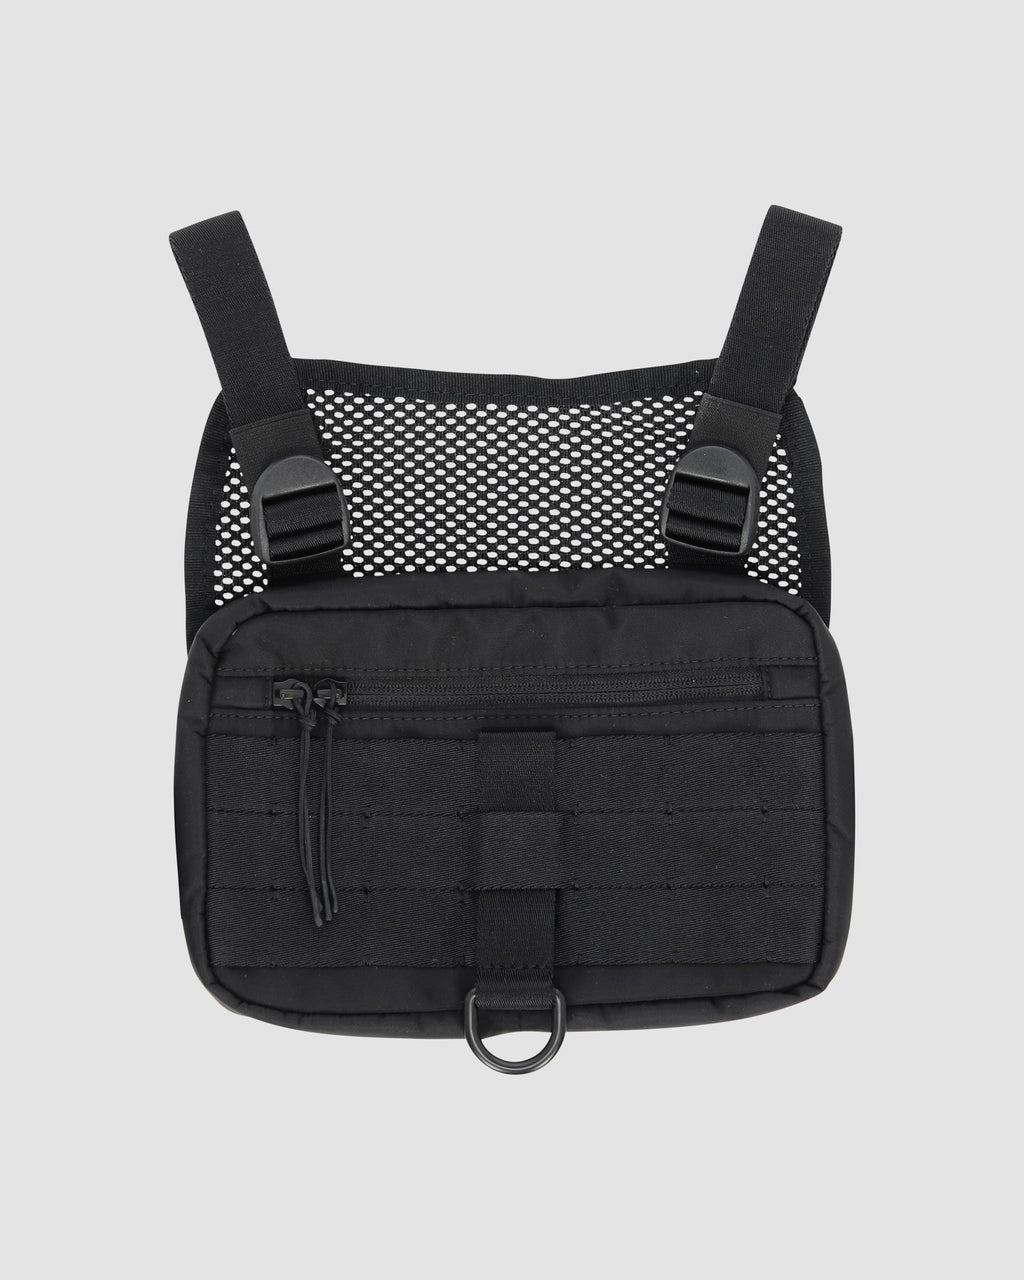 NEW MINI CHEST RIG